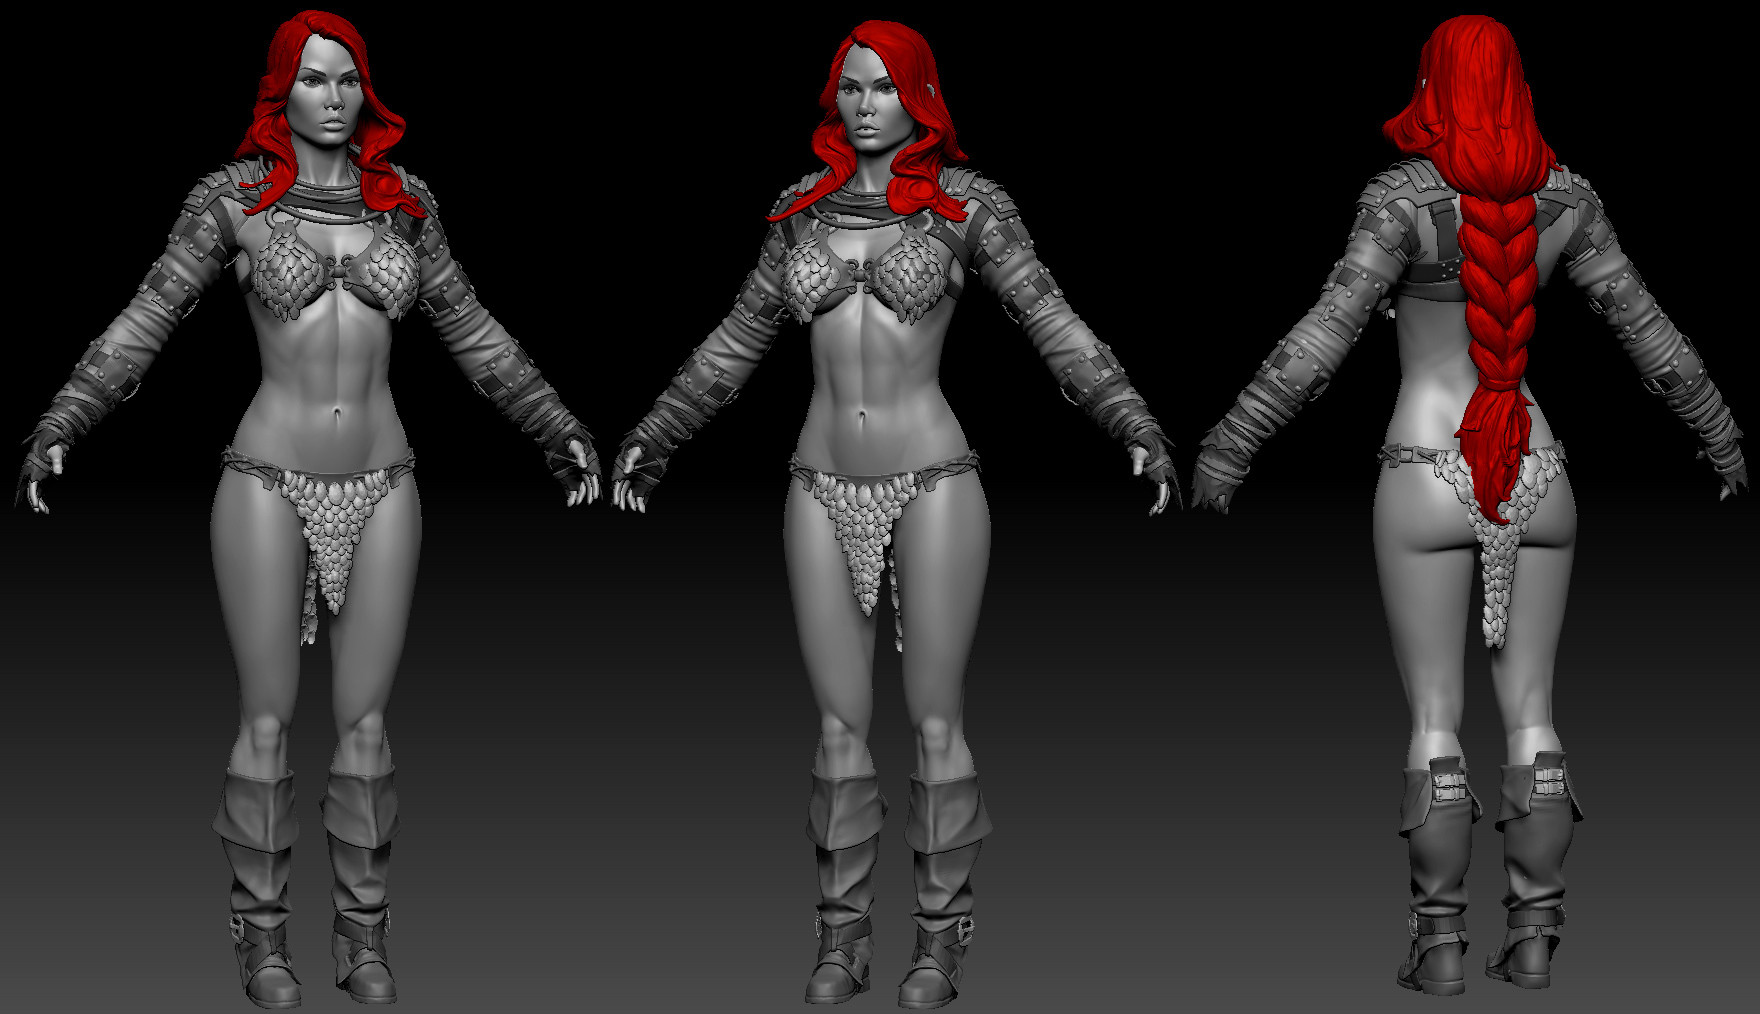 T d chiu redsonja wip whole 0074